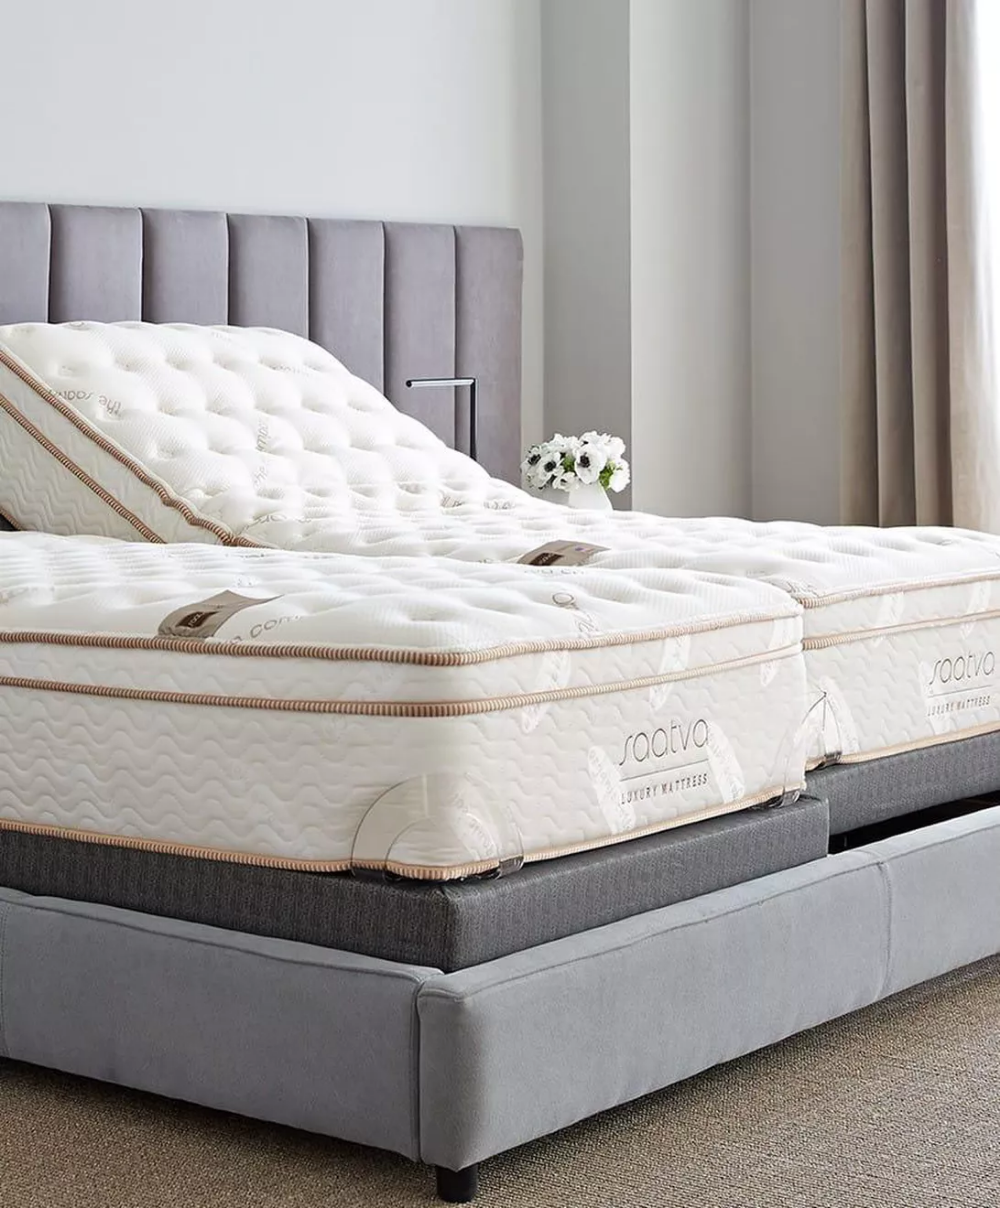 Find the best mattress in 2020 11 top brands compared